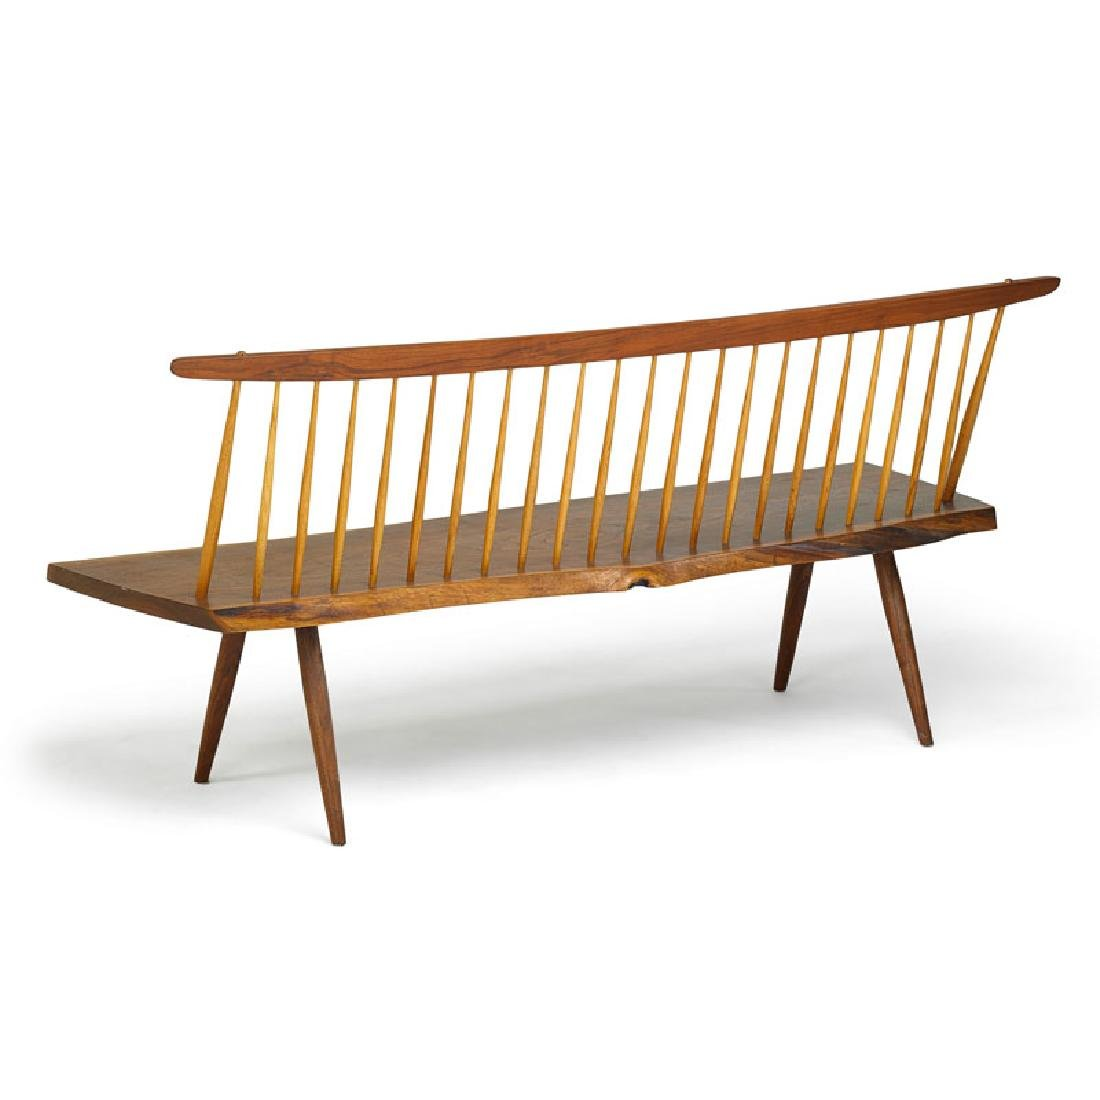 GEORGE NAKASHIMA Bench with back - 3